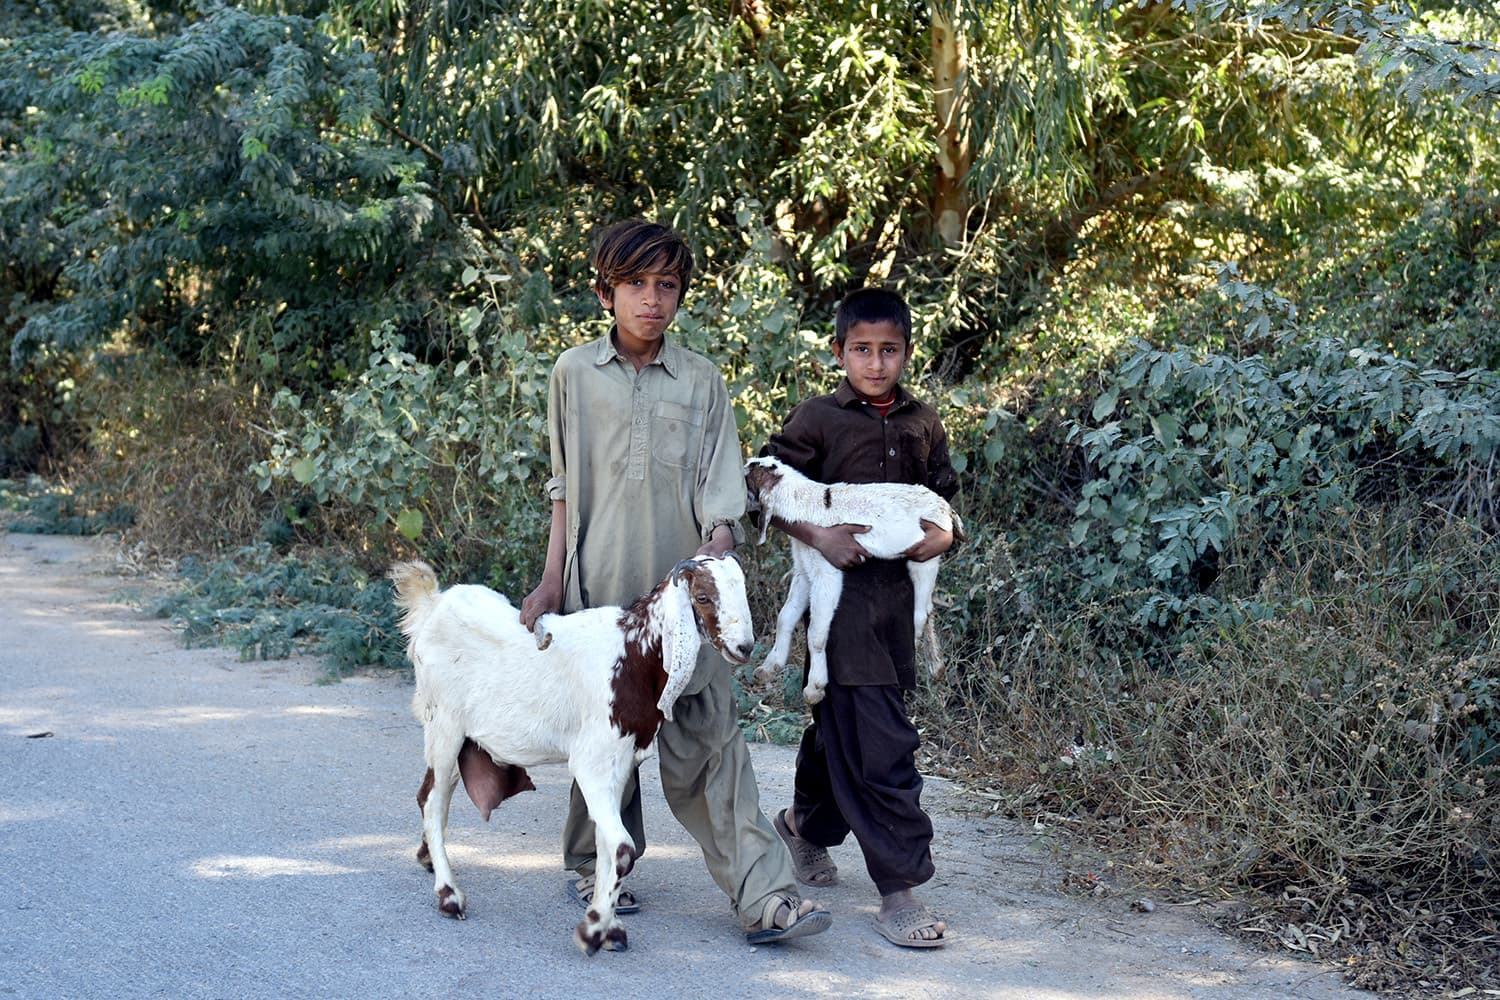 Livestock rearing is a major source of income. — Fahim Siddiqui/White Star